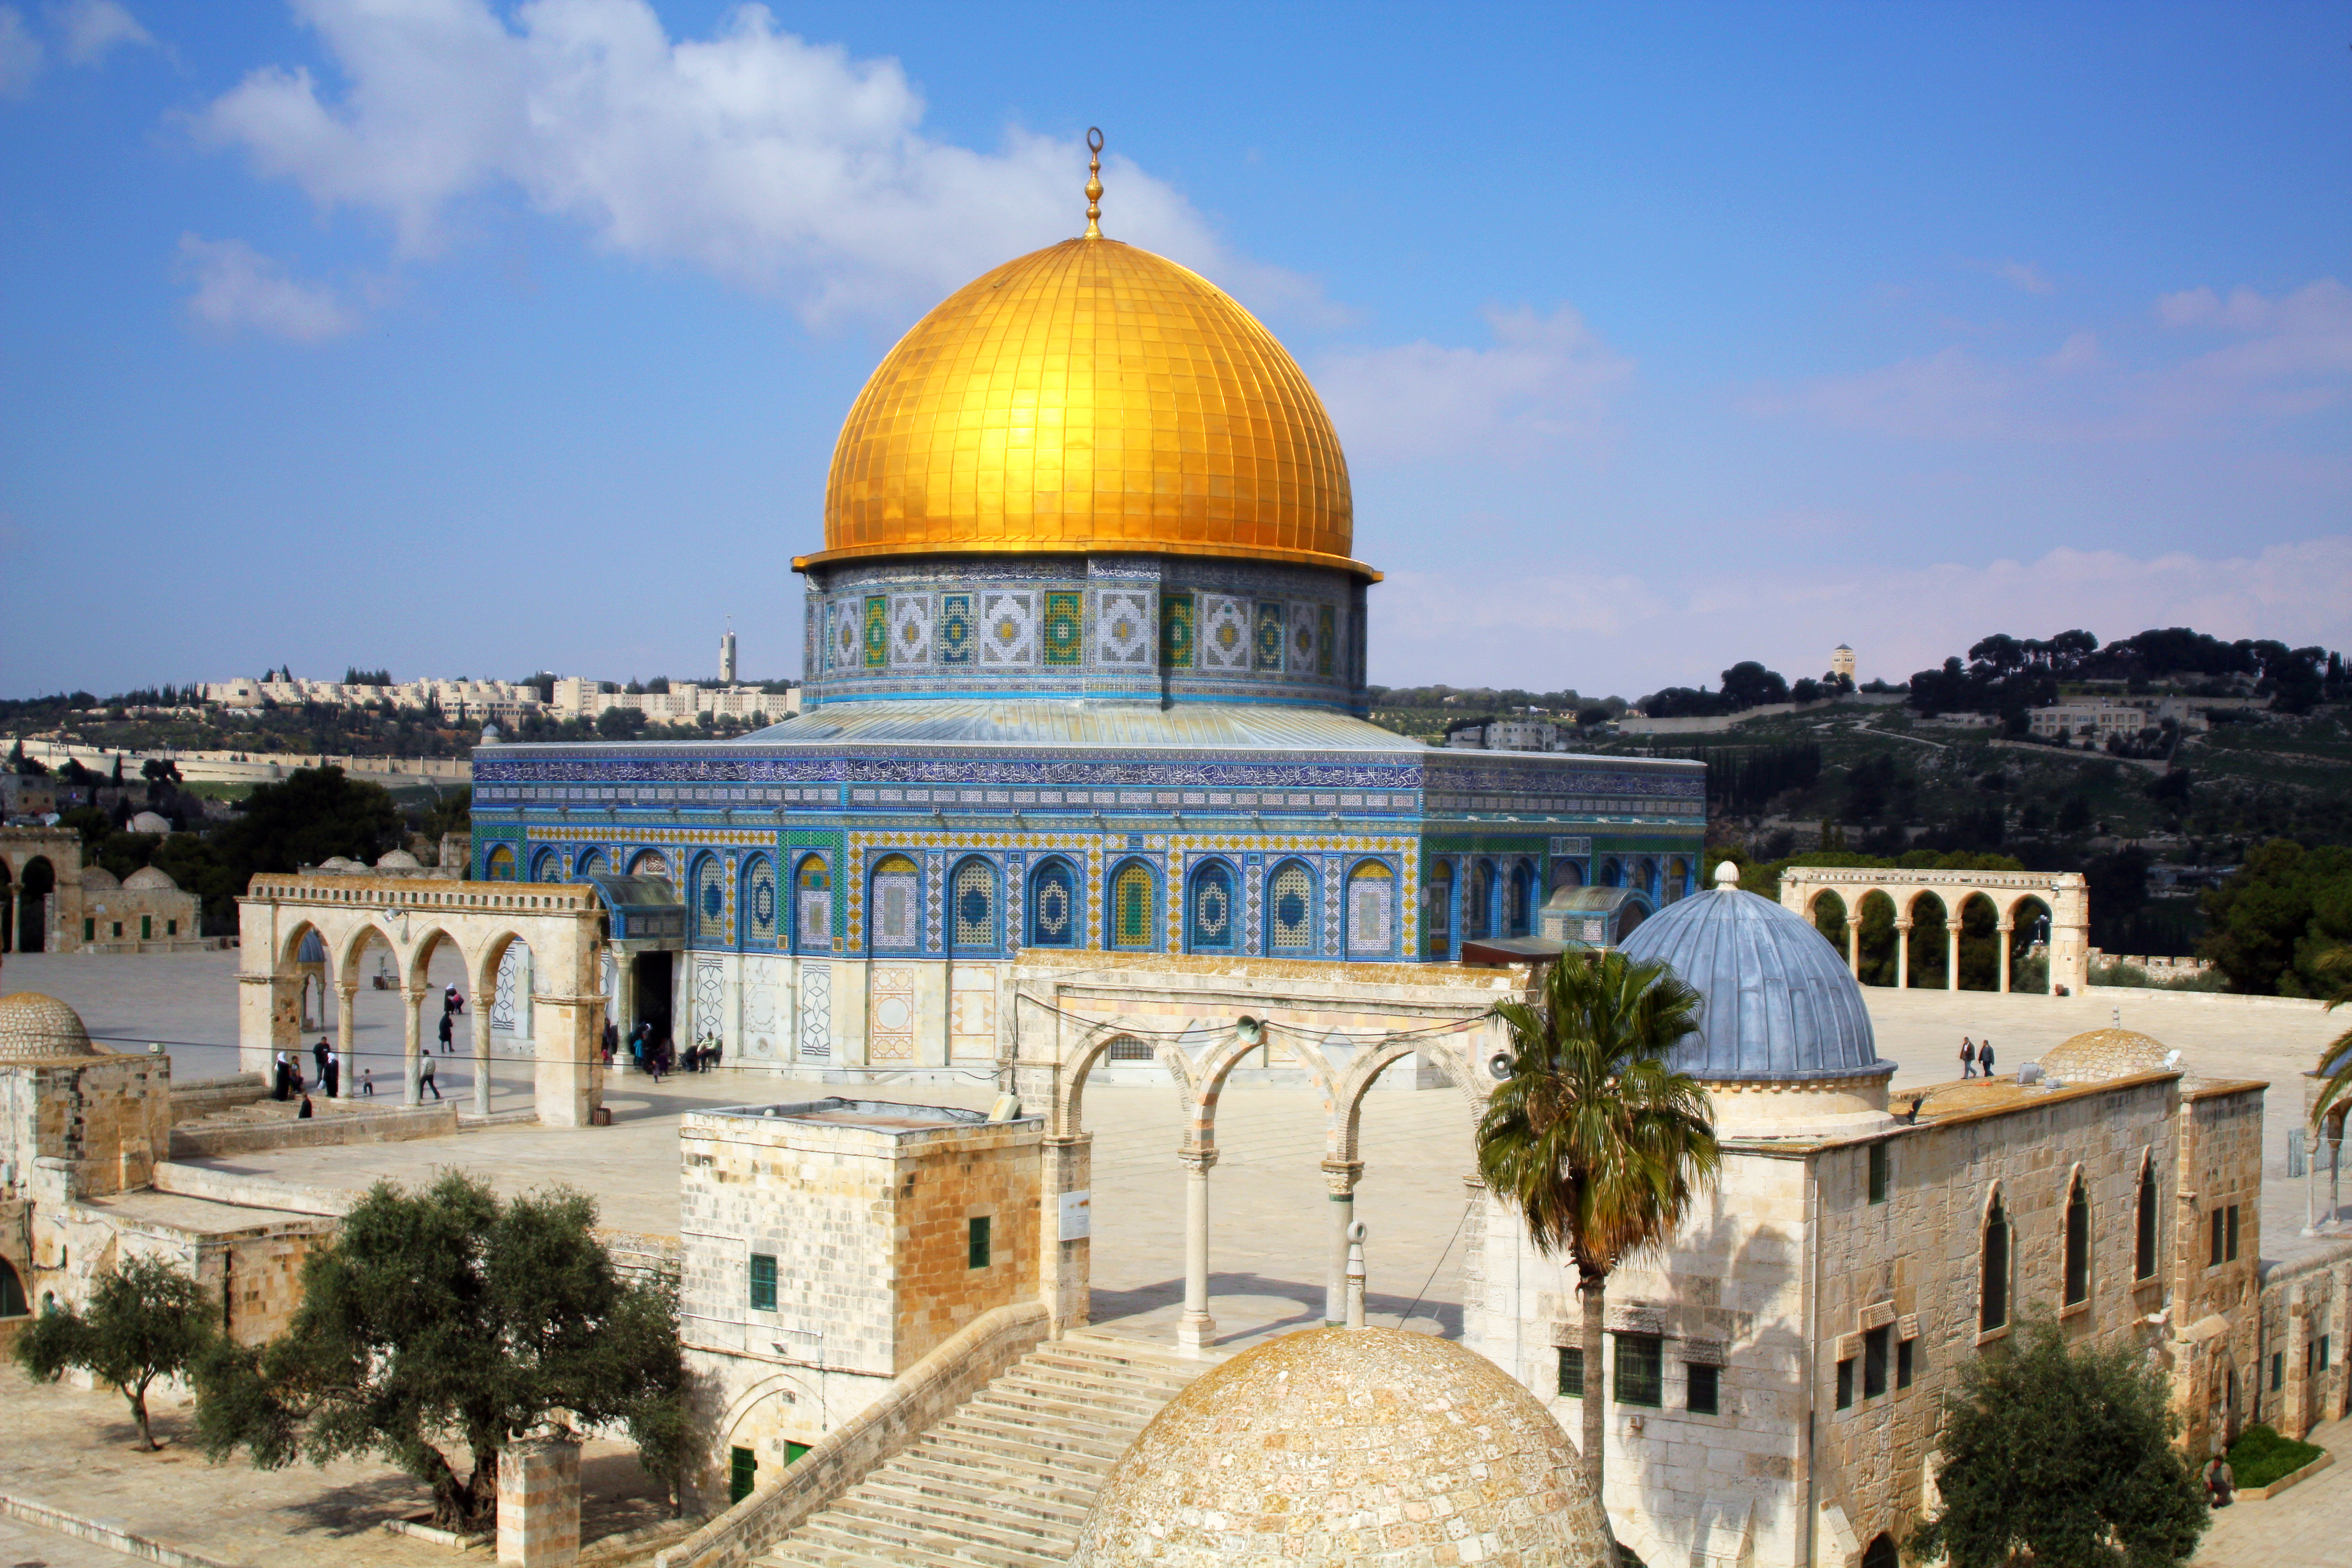 https://upload.wikimedia.org/wikipedia/commons/a/ac/Dome_of_Rock%2C_Temple_Mount%2C_Jerusalem.jpg